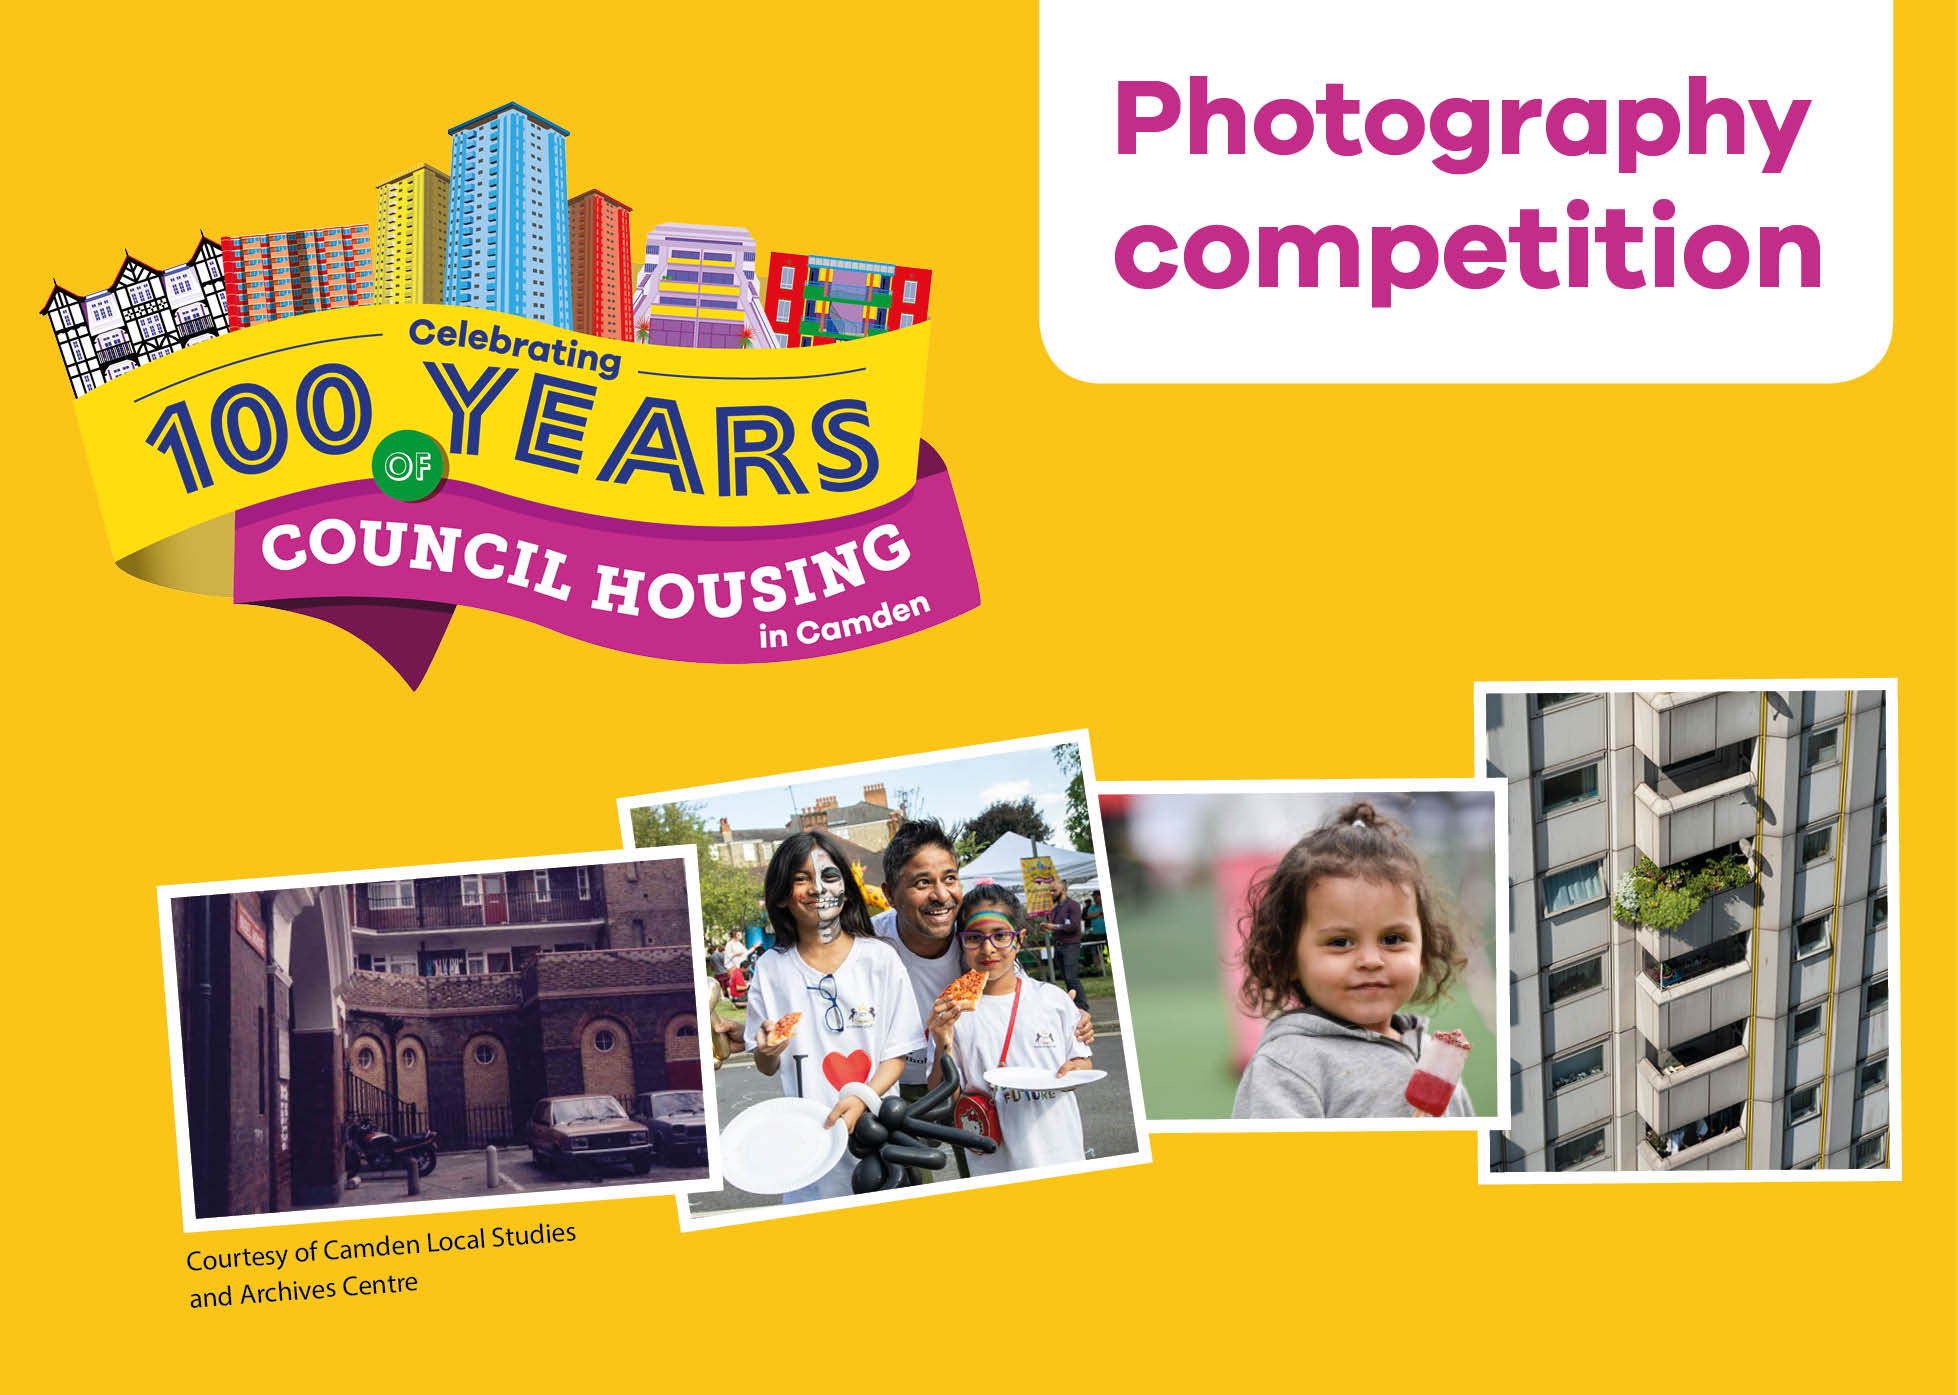 100 years of council housing photography competition